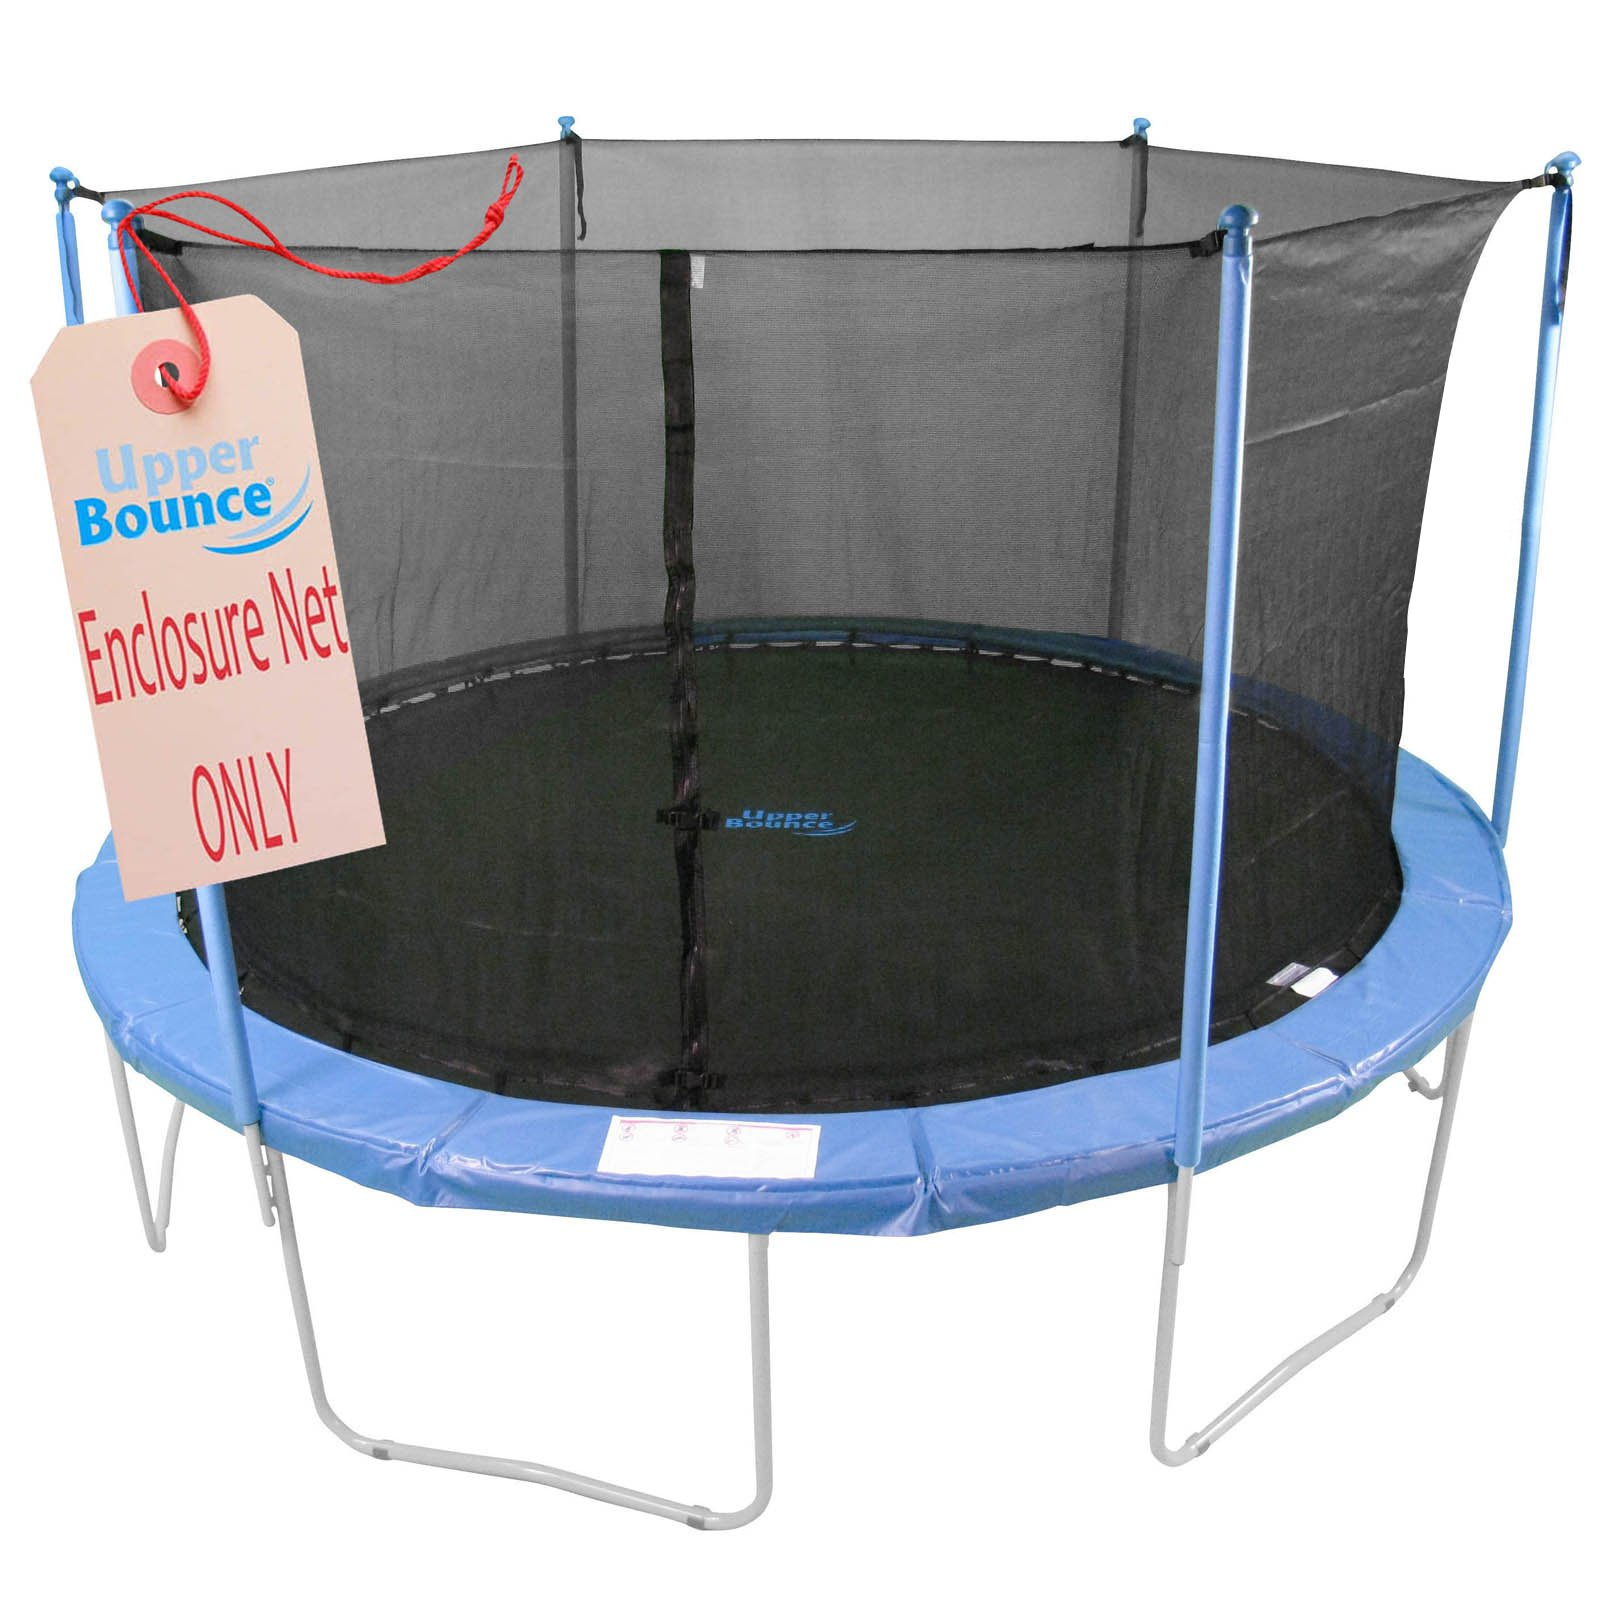 Upper Bounce Trampoline Replacement Enclosure Net, Fits for 7.5 FT. Round Frames, with Adjustable Straps, Using 6 Poles or 3 Arches - Net Only